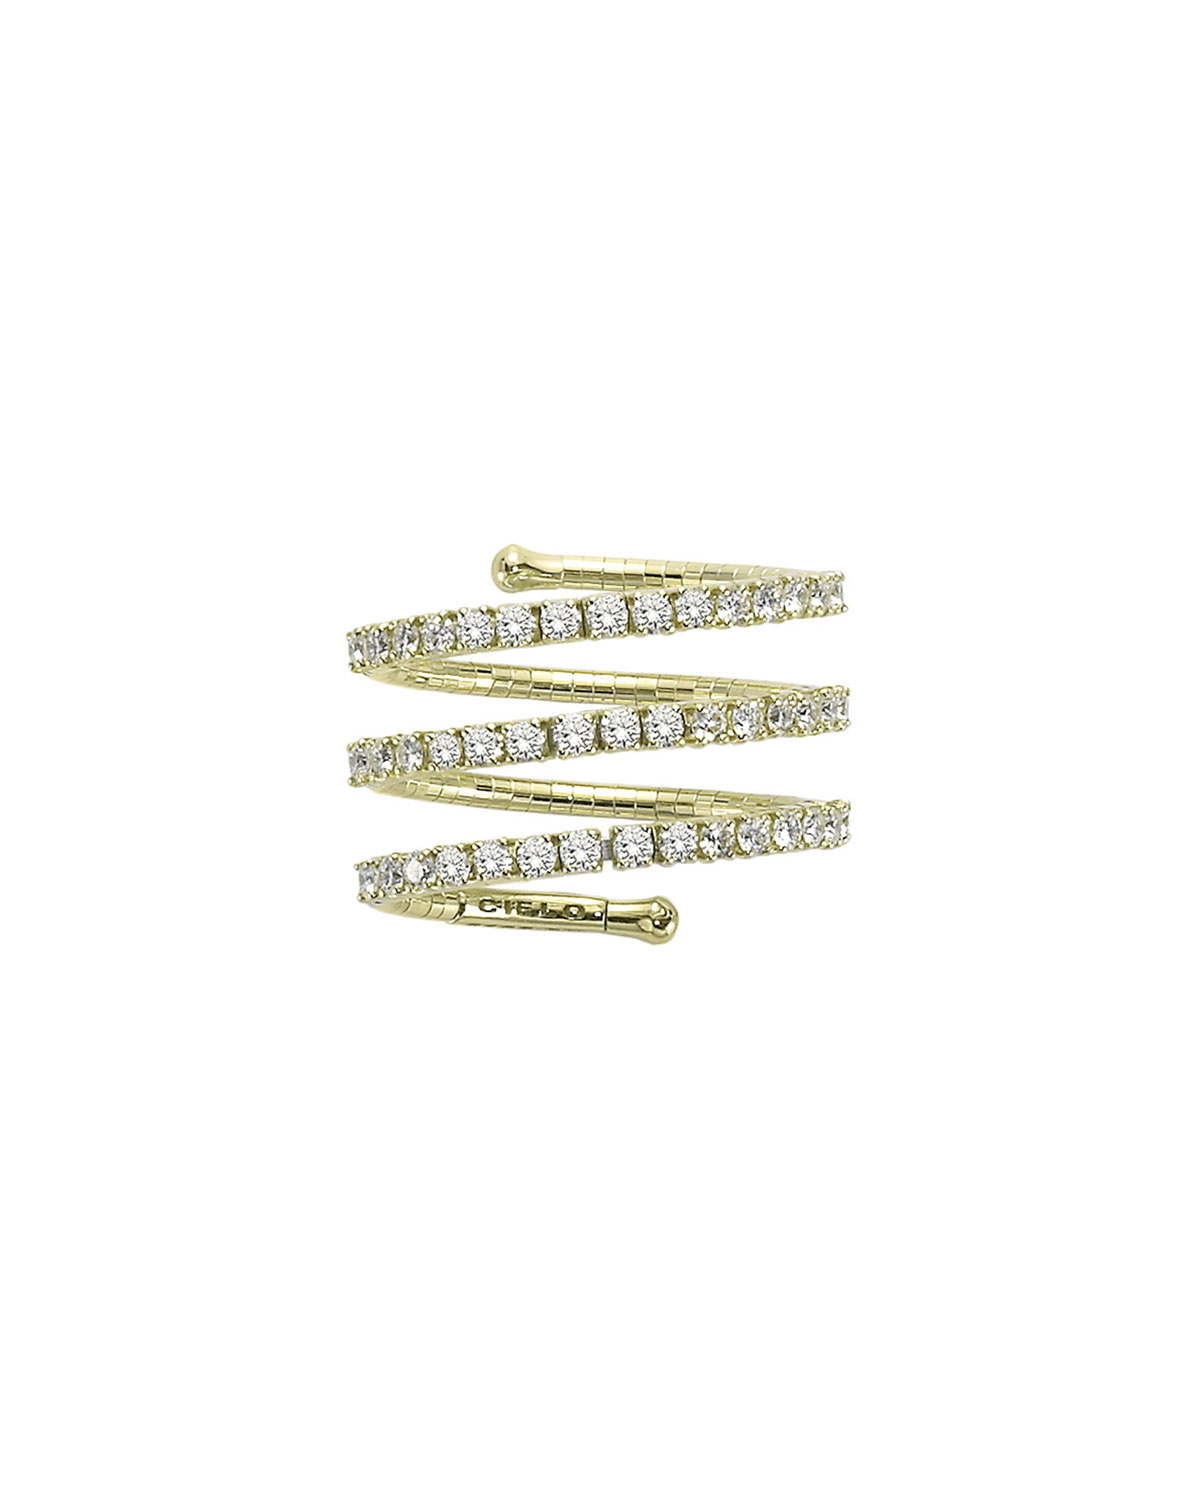 Mattia Cielo 18k Yellow Gold 3-Row Diamond Spiral Ring, Size 5.5-6